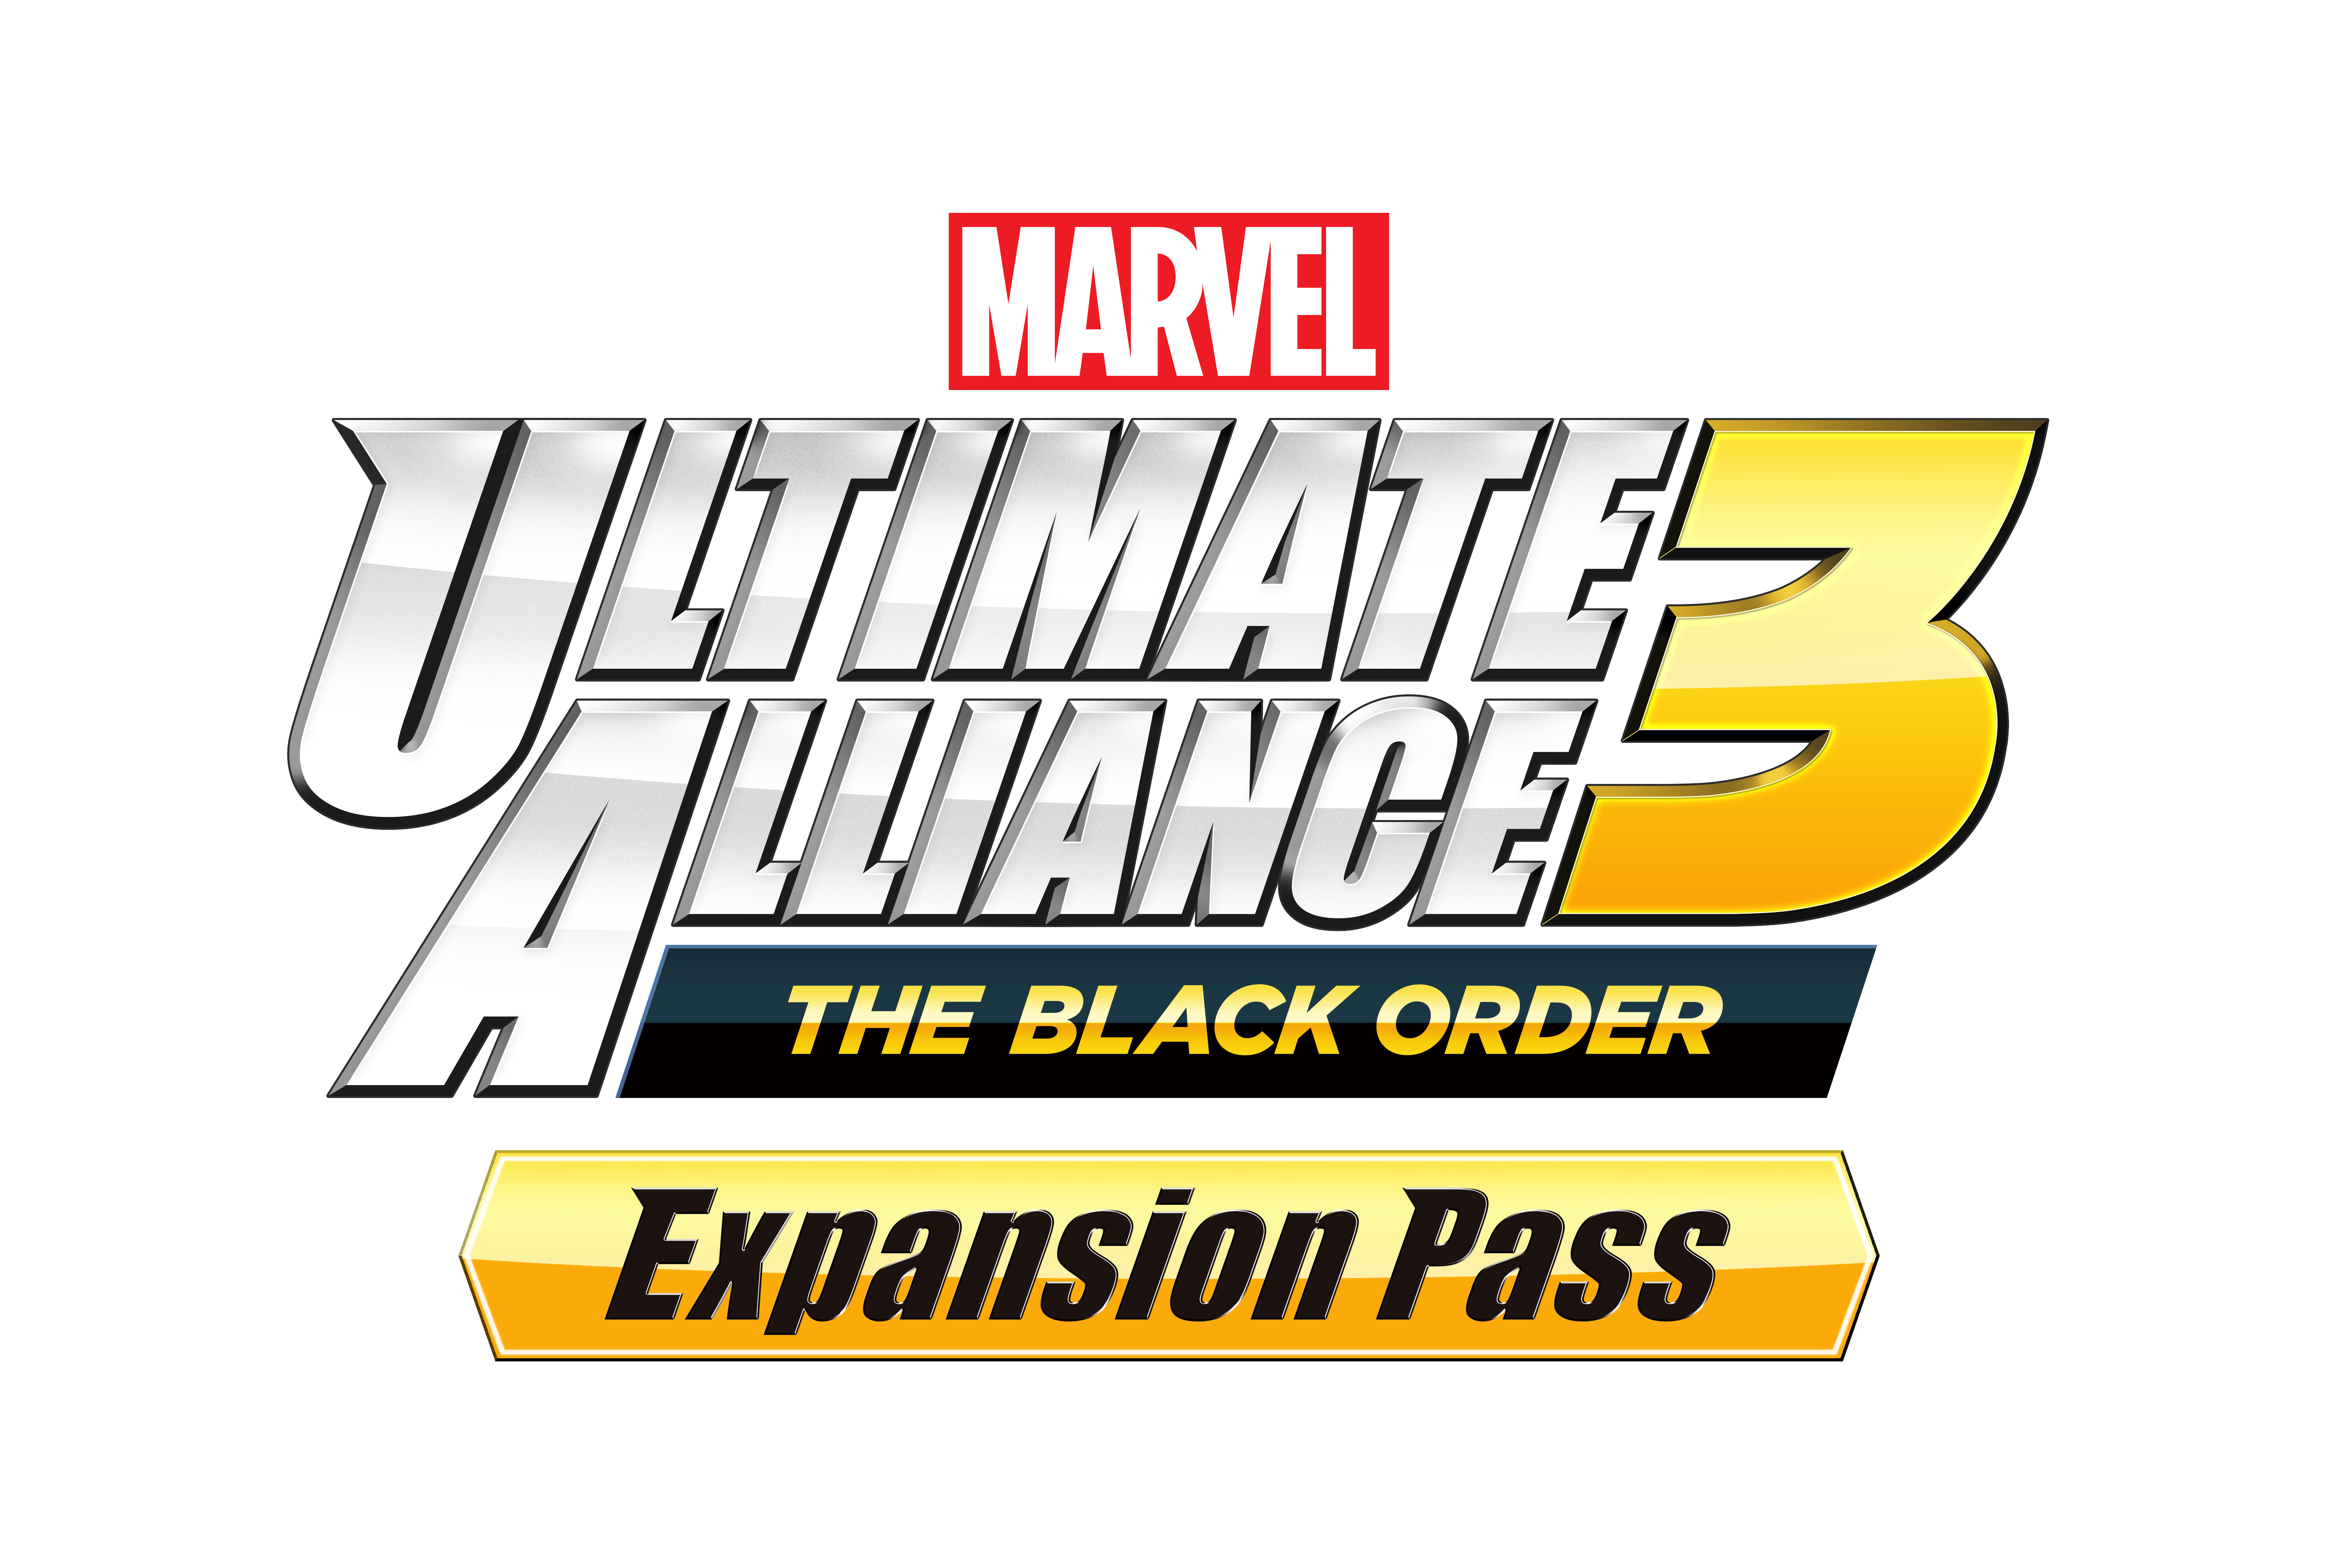 CI_NSwitch_MarvelUltimateAlliance3_DLC.png